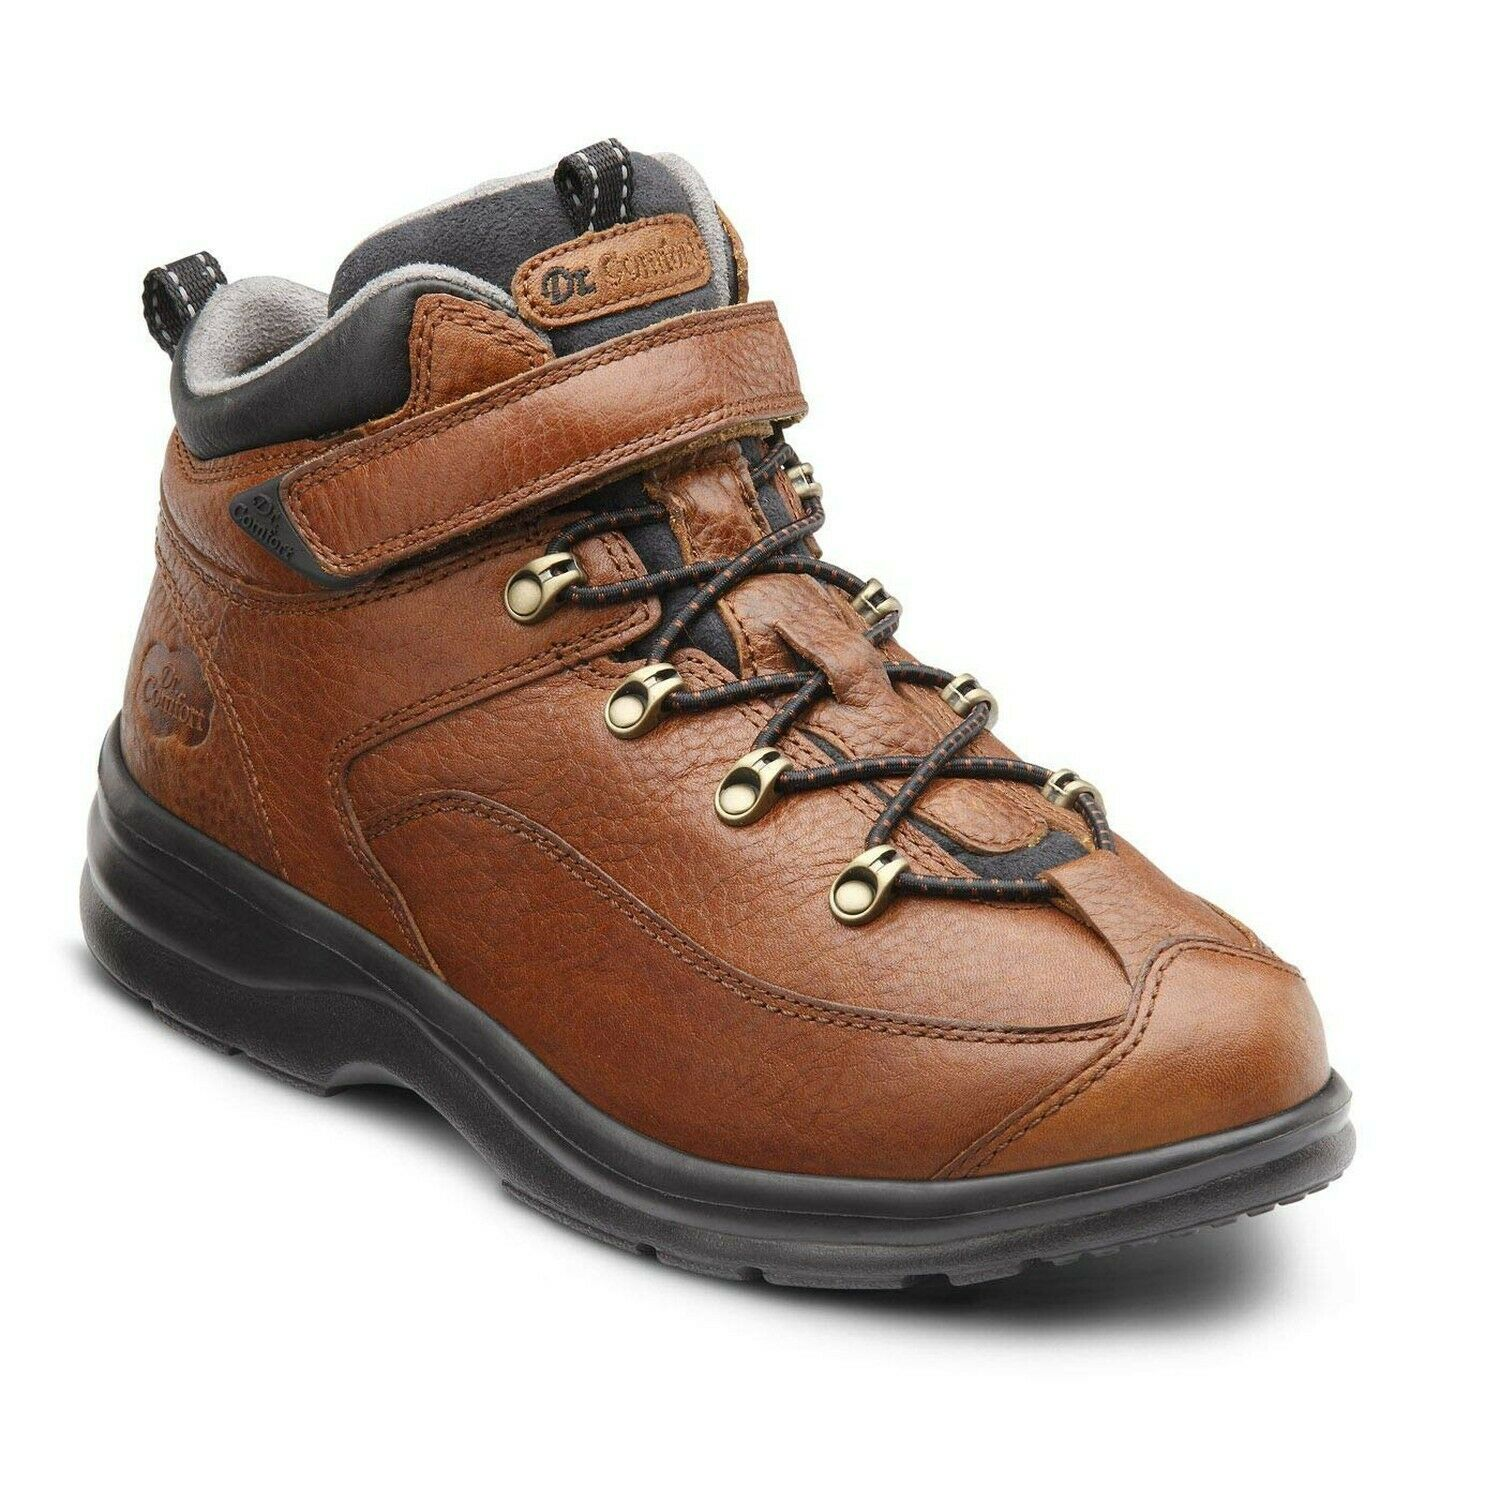 Dr. Comfort Vigor Women's Therapeutic Diabetic Extra Depth Hiking Boot: Chest...